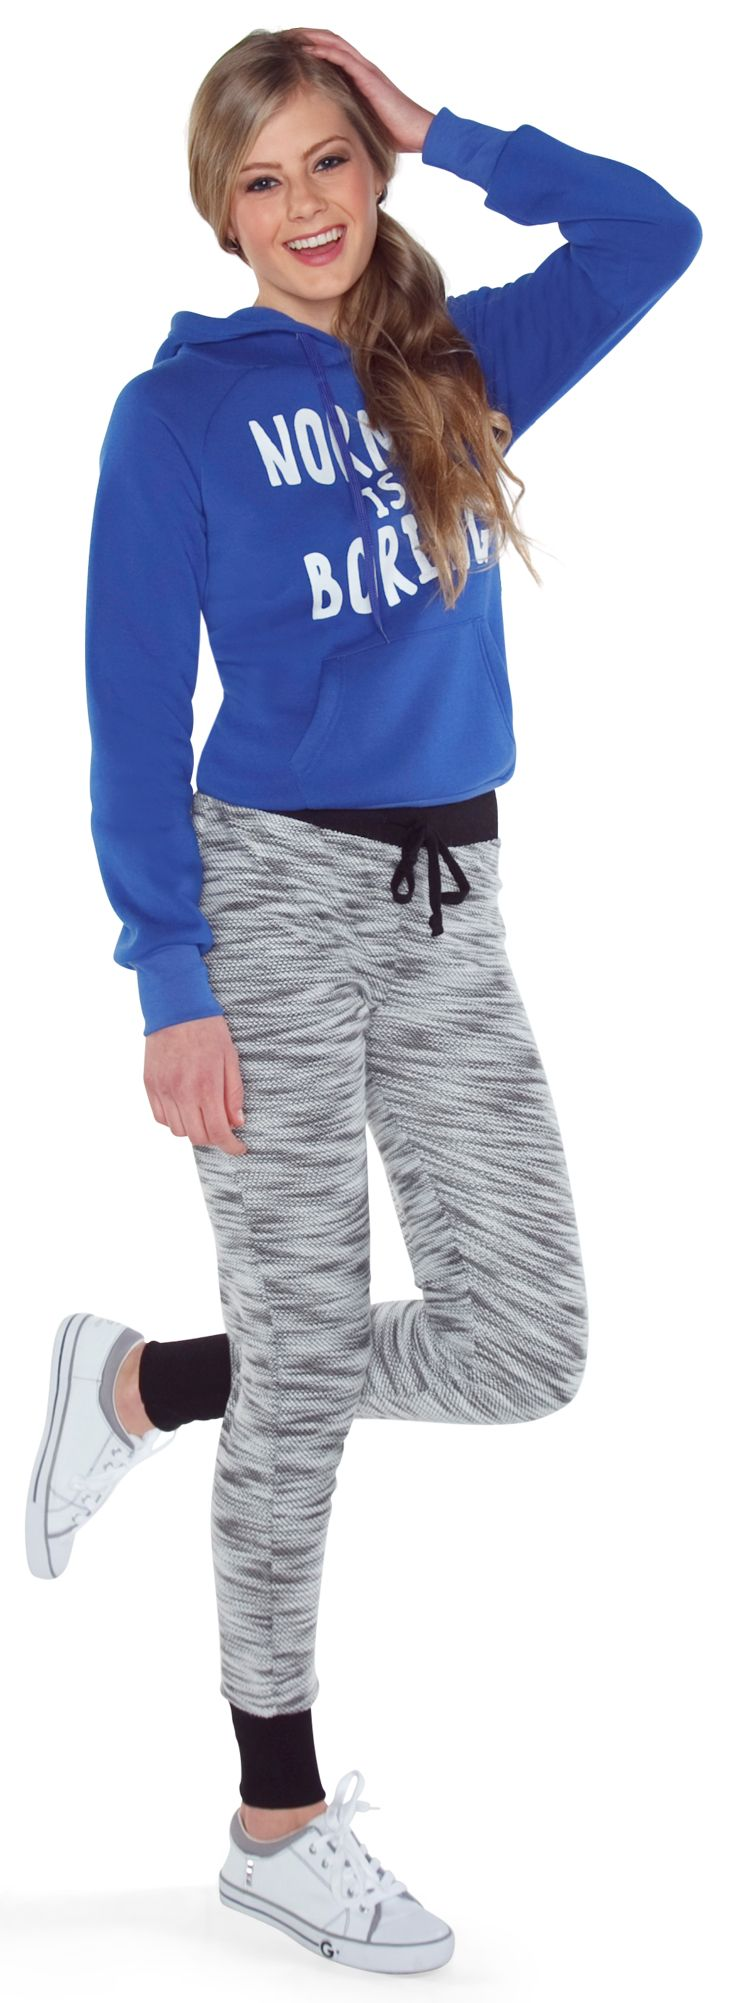 Comfy Athletic Wear Or Athleisure Makes For The Ideal Travel Ensemble Joggers